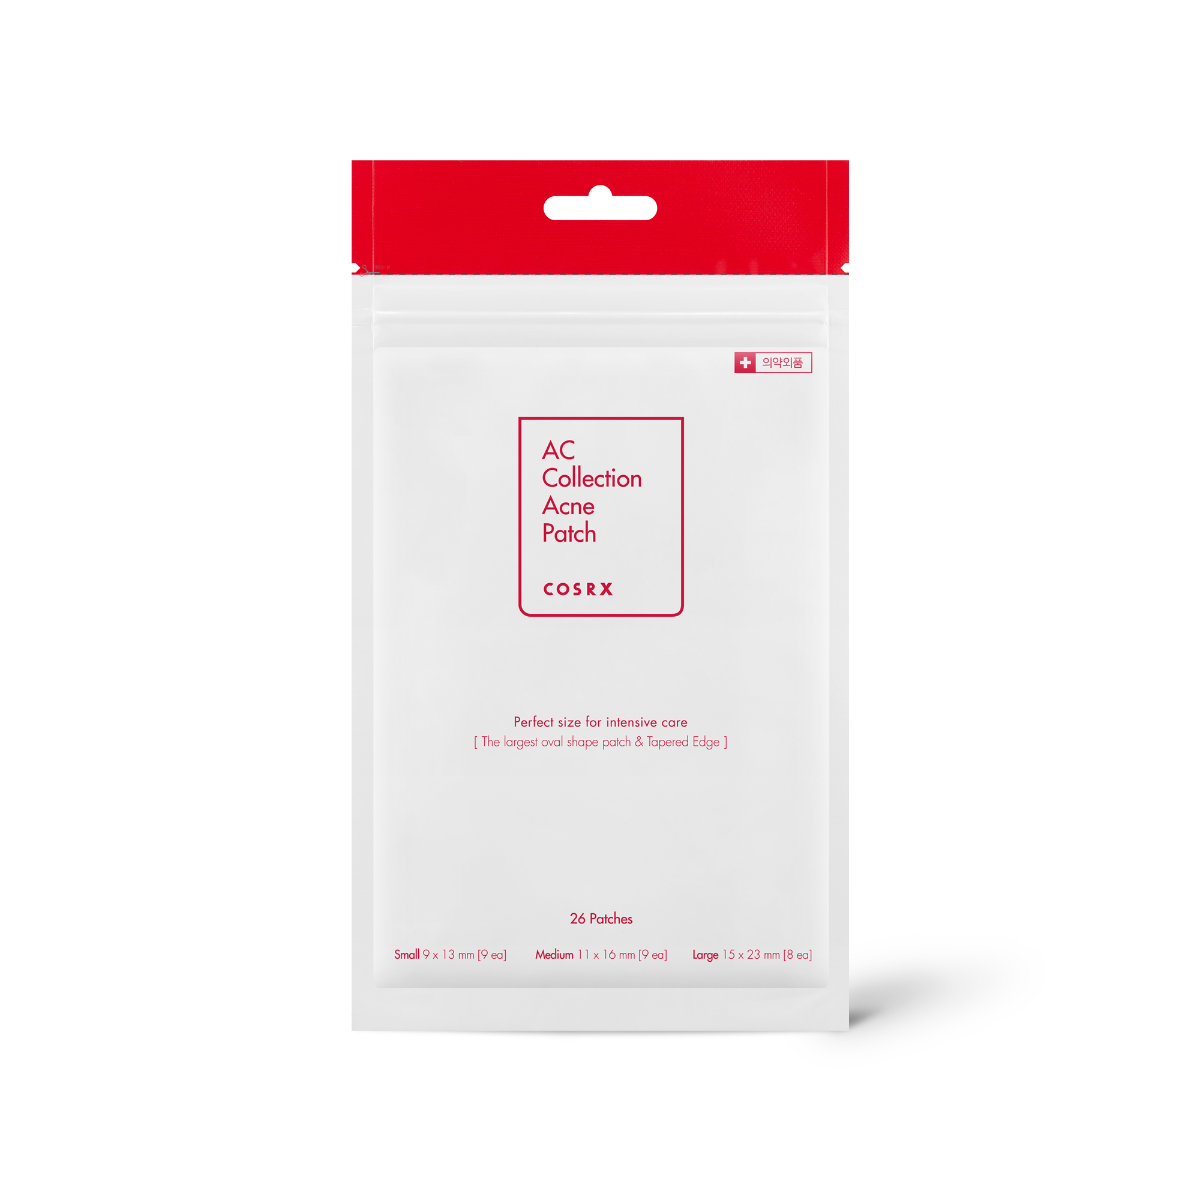 COSRX AC Collection Acne Patch New